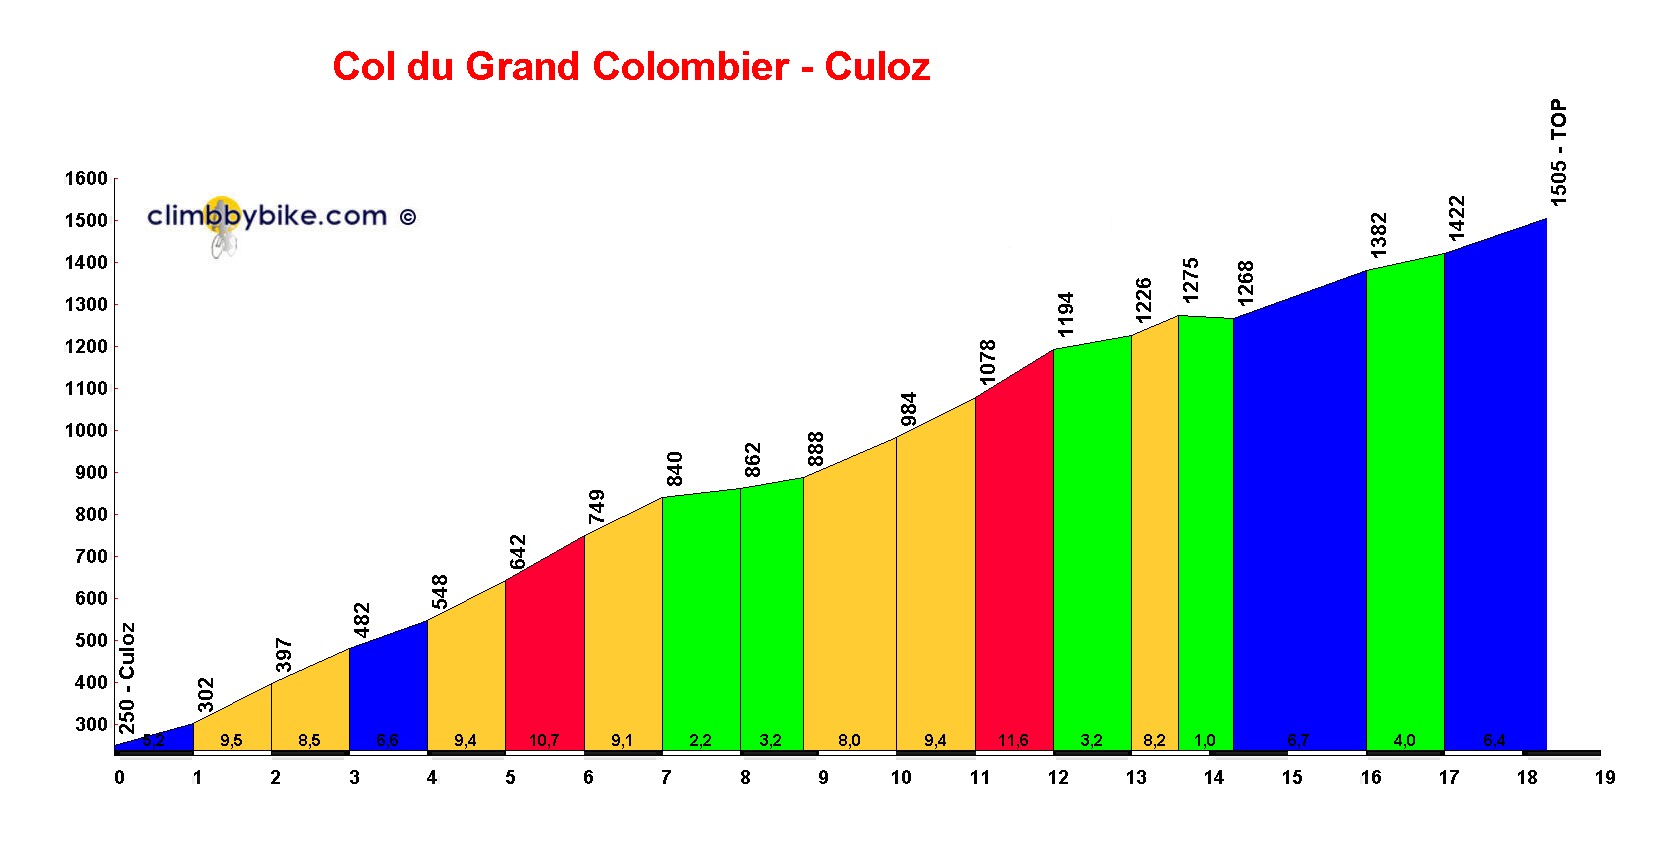 Elevation profile for Col du Grand Colombier (Culoz)